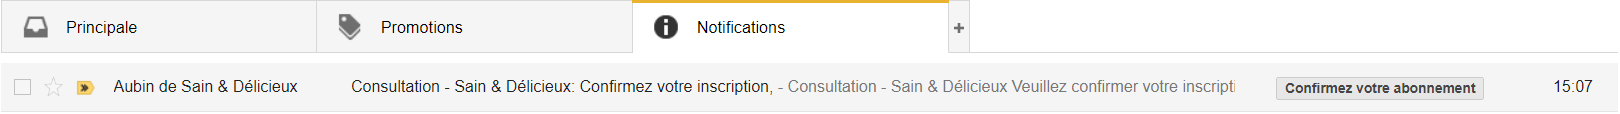 Consultation - Confirmation